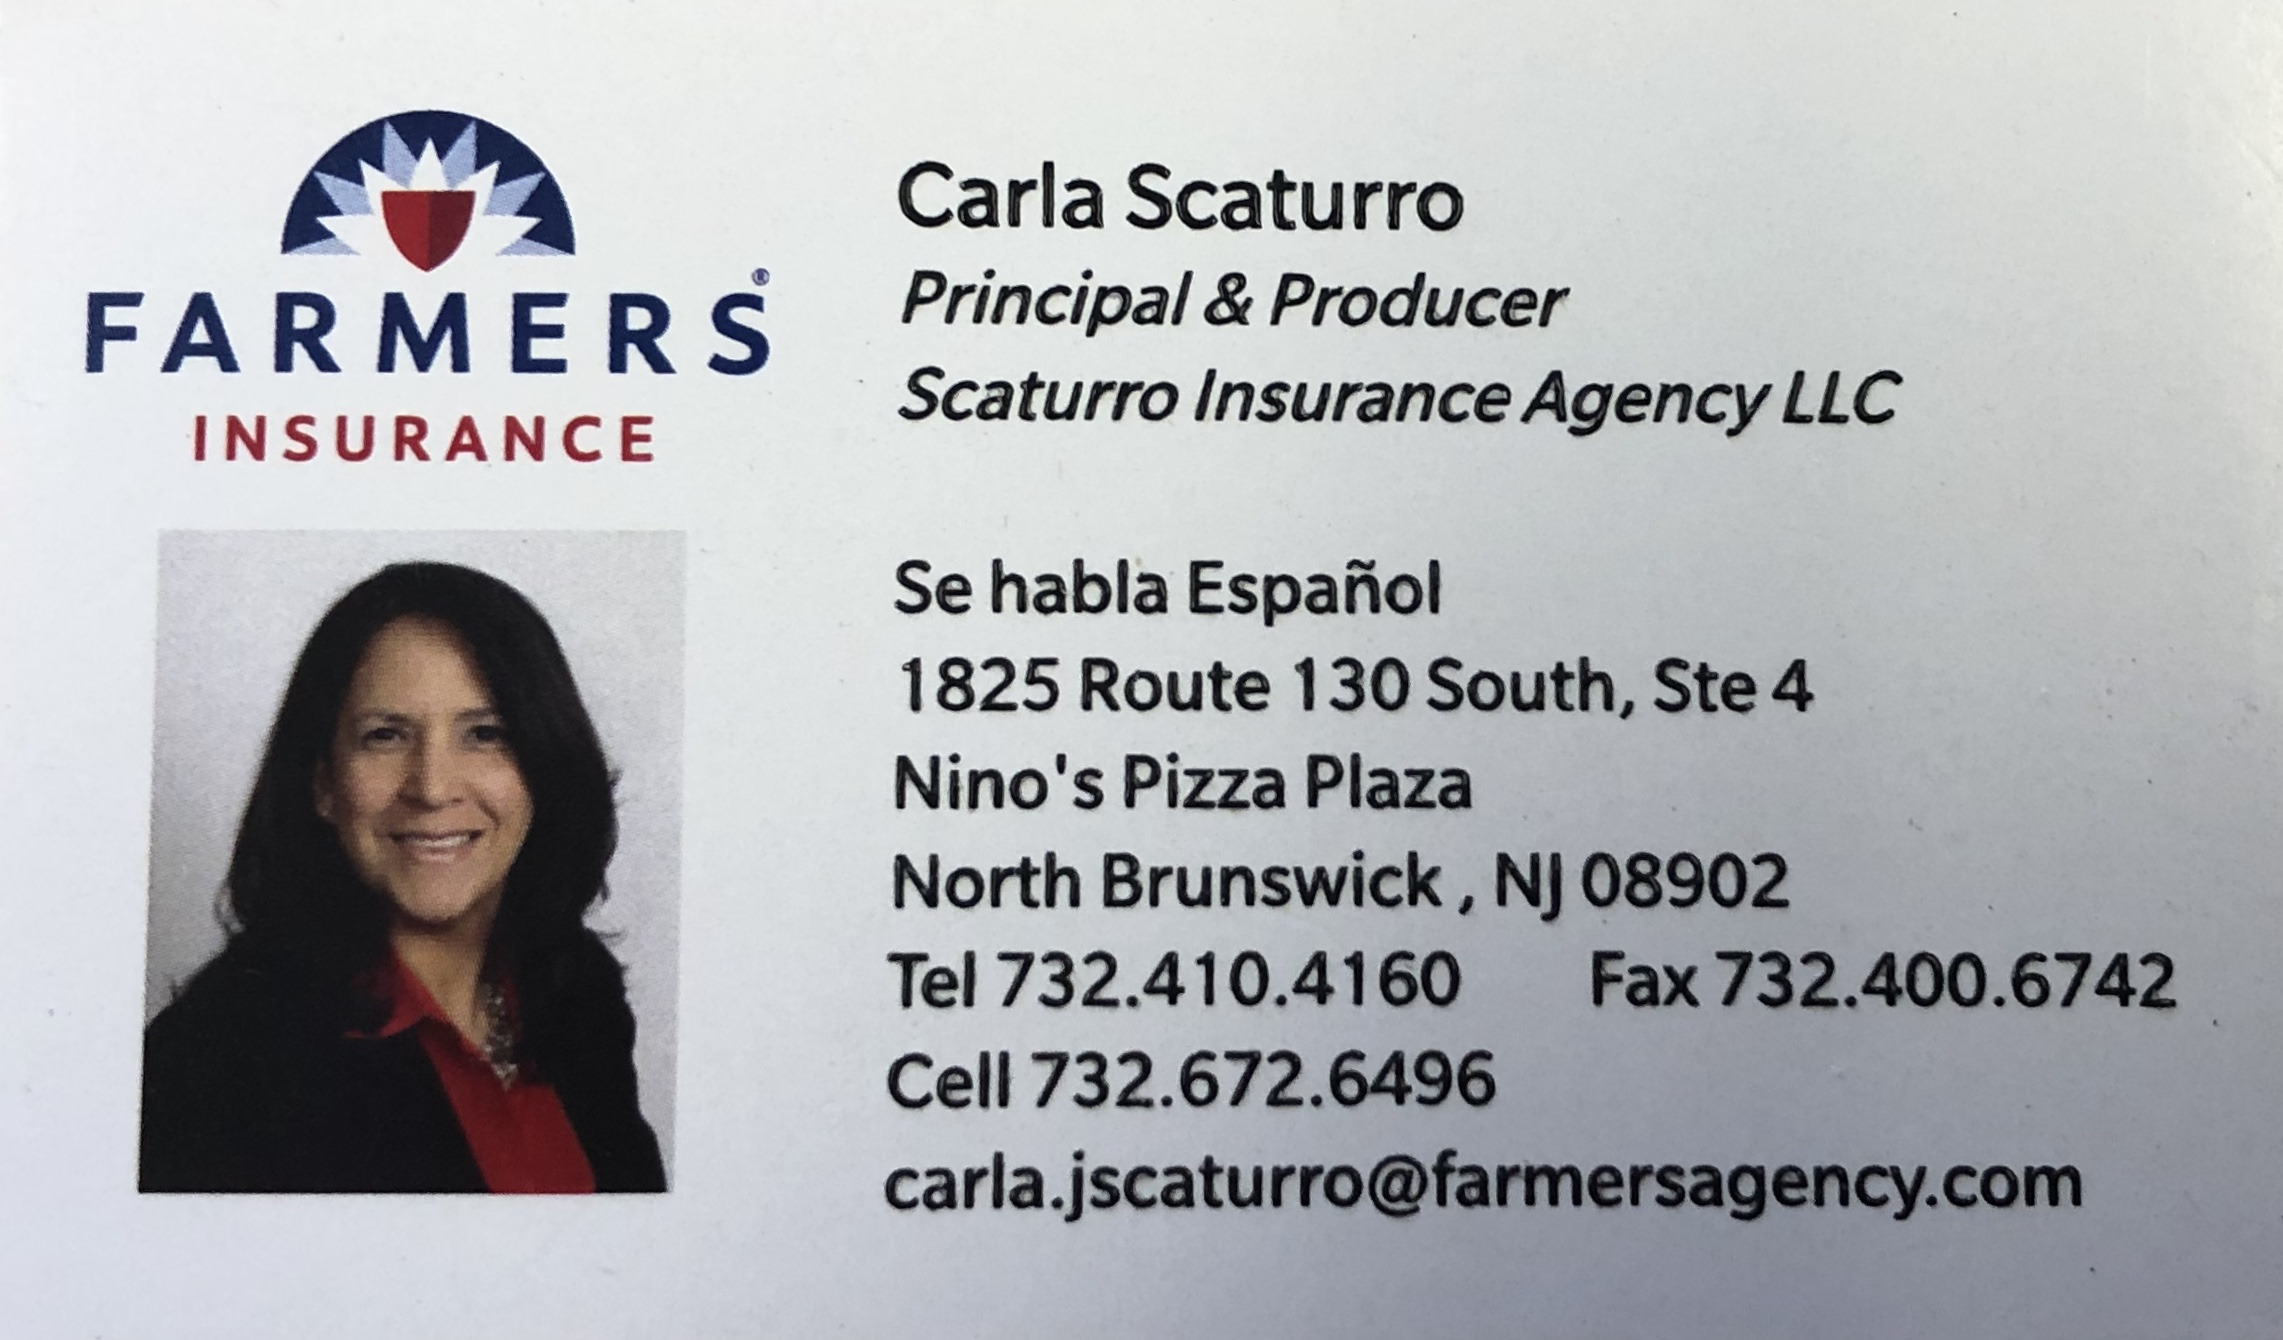 """Carla Scaturro - Farmer's Insurance Agent for Scaturro Insurance Agency LLC, """"As your local Farmers® agent in North Brunswick, New Jersey, I help customers like you identify the insurance coverage that best fits your needs. This process is straightforward and personalized to help make you smarter about insurance. I have over 25 years of knowledge and experience to help you better understand your coverage options--whether that's auto, home, renters, business insurance and more""""."""